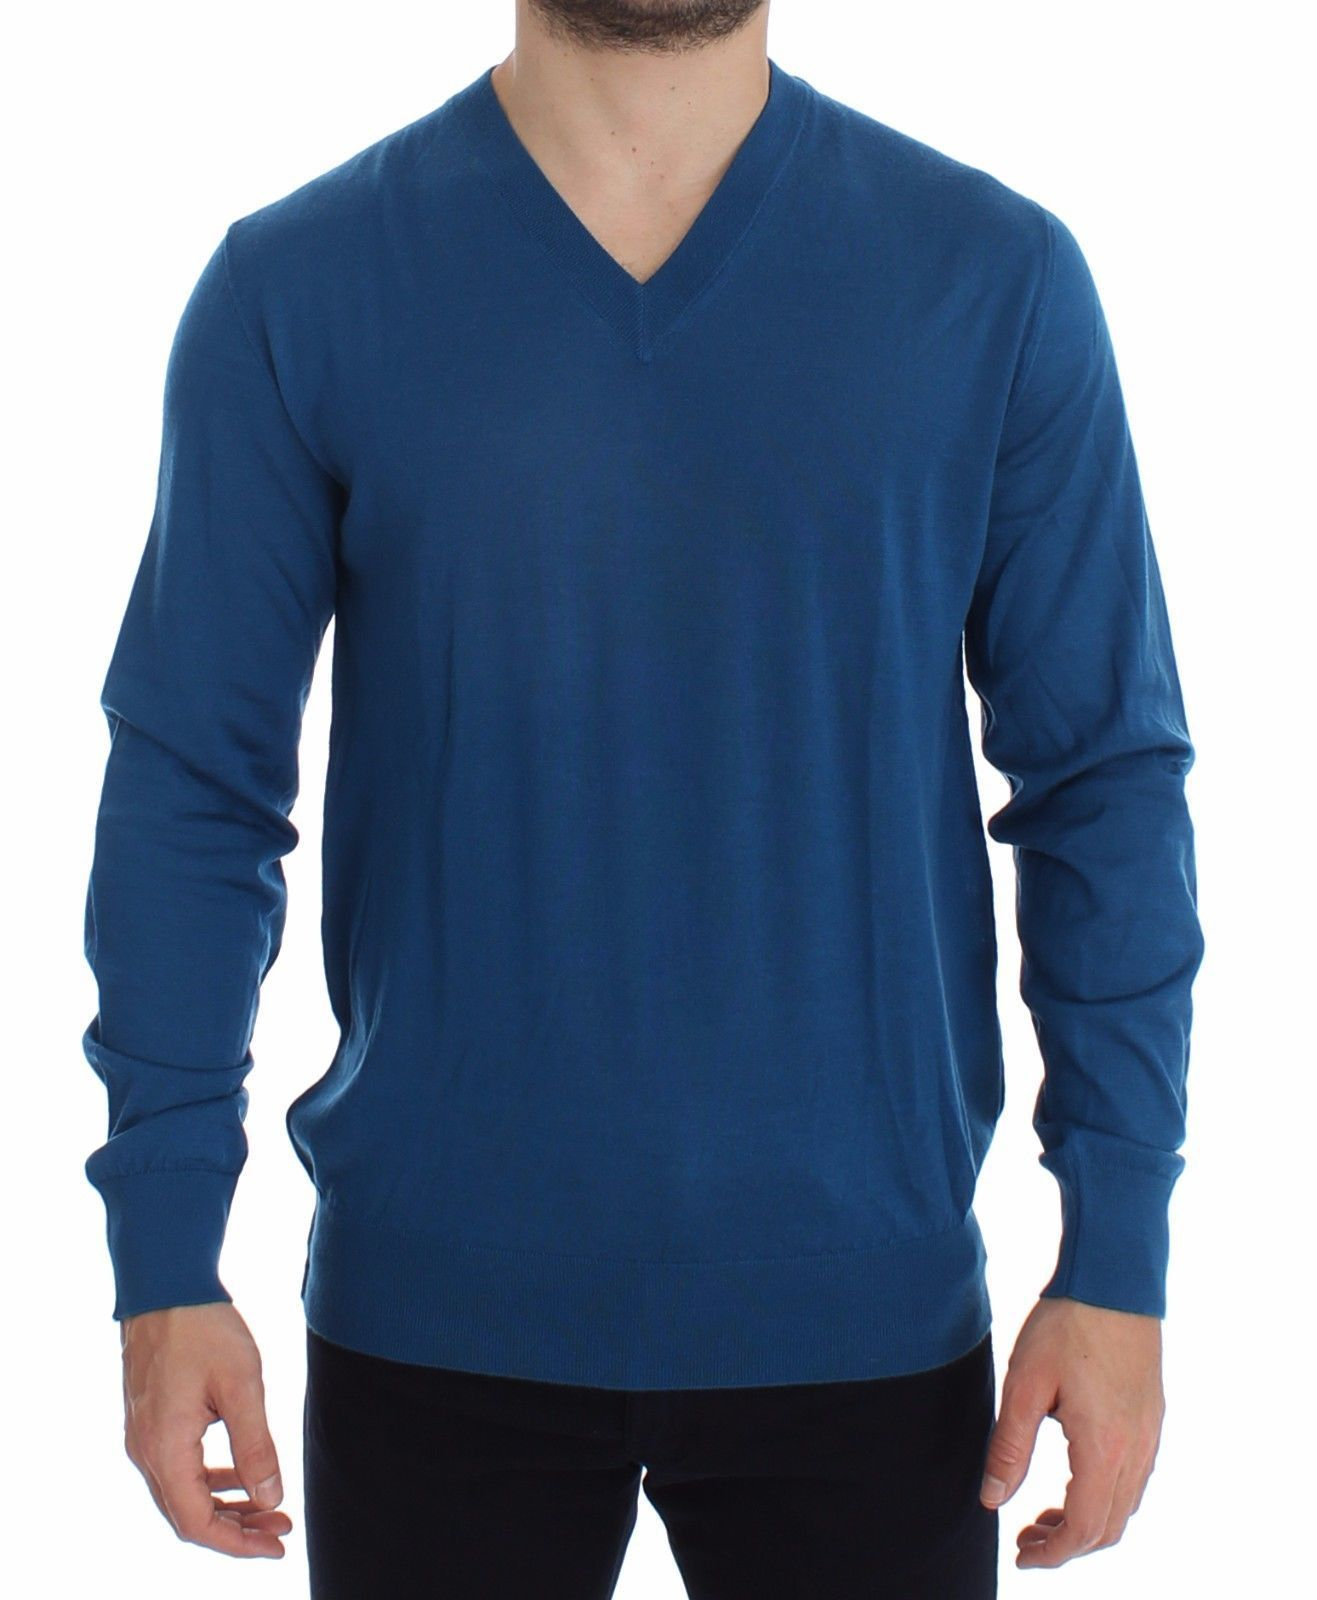 Dolce & Gabbana Blue Cashmere V-neck Sweater Pullover Top 12788